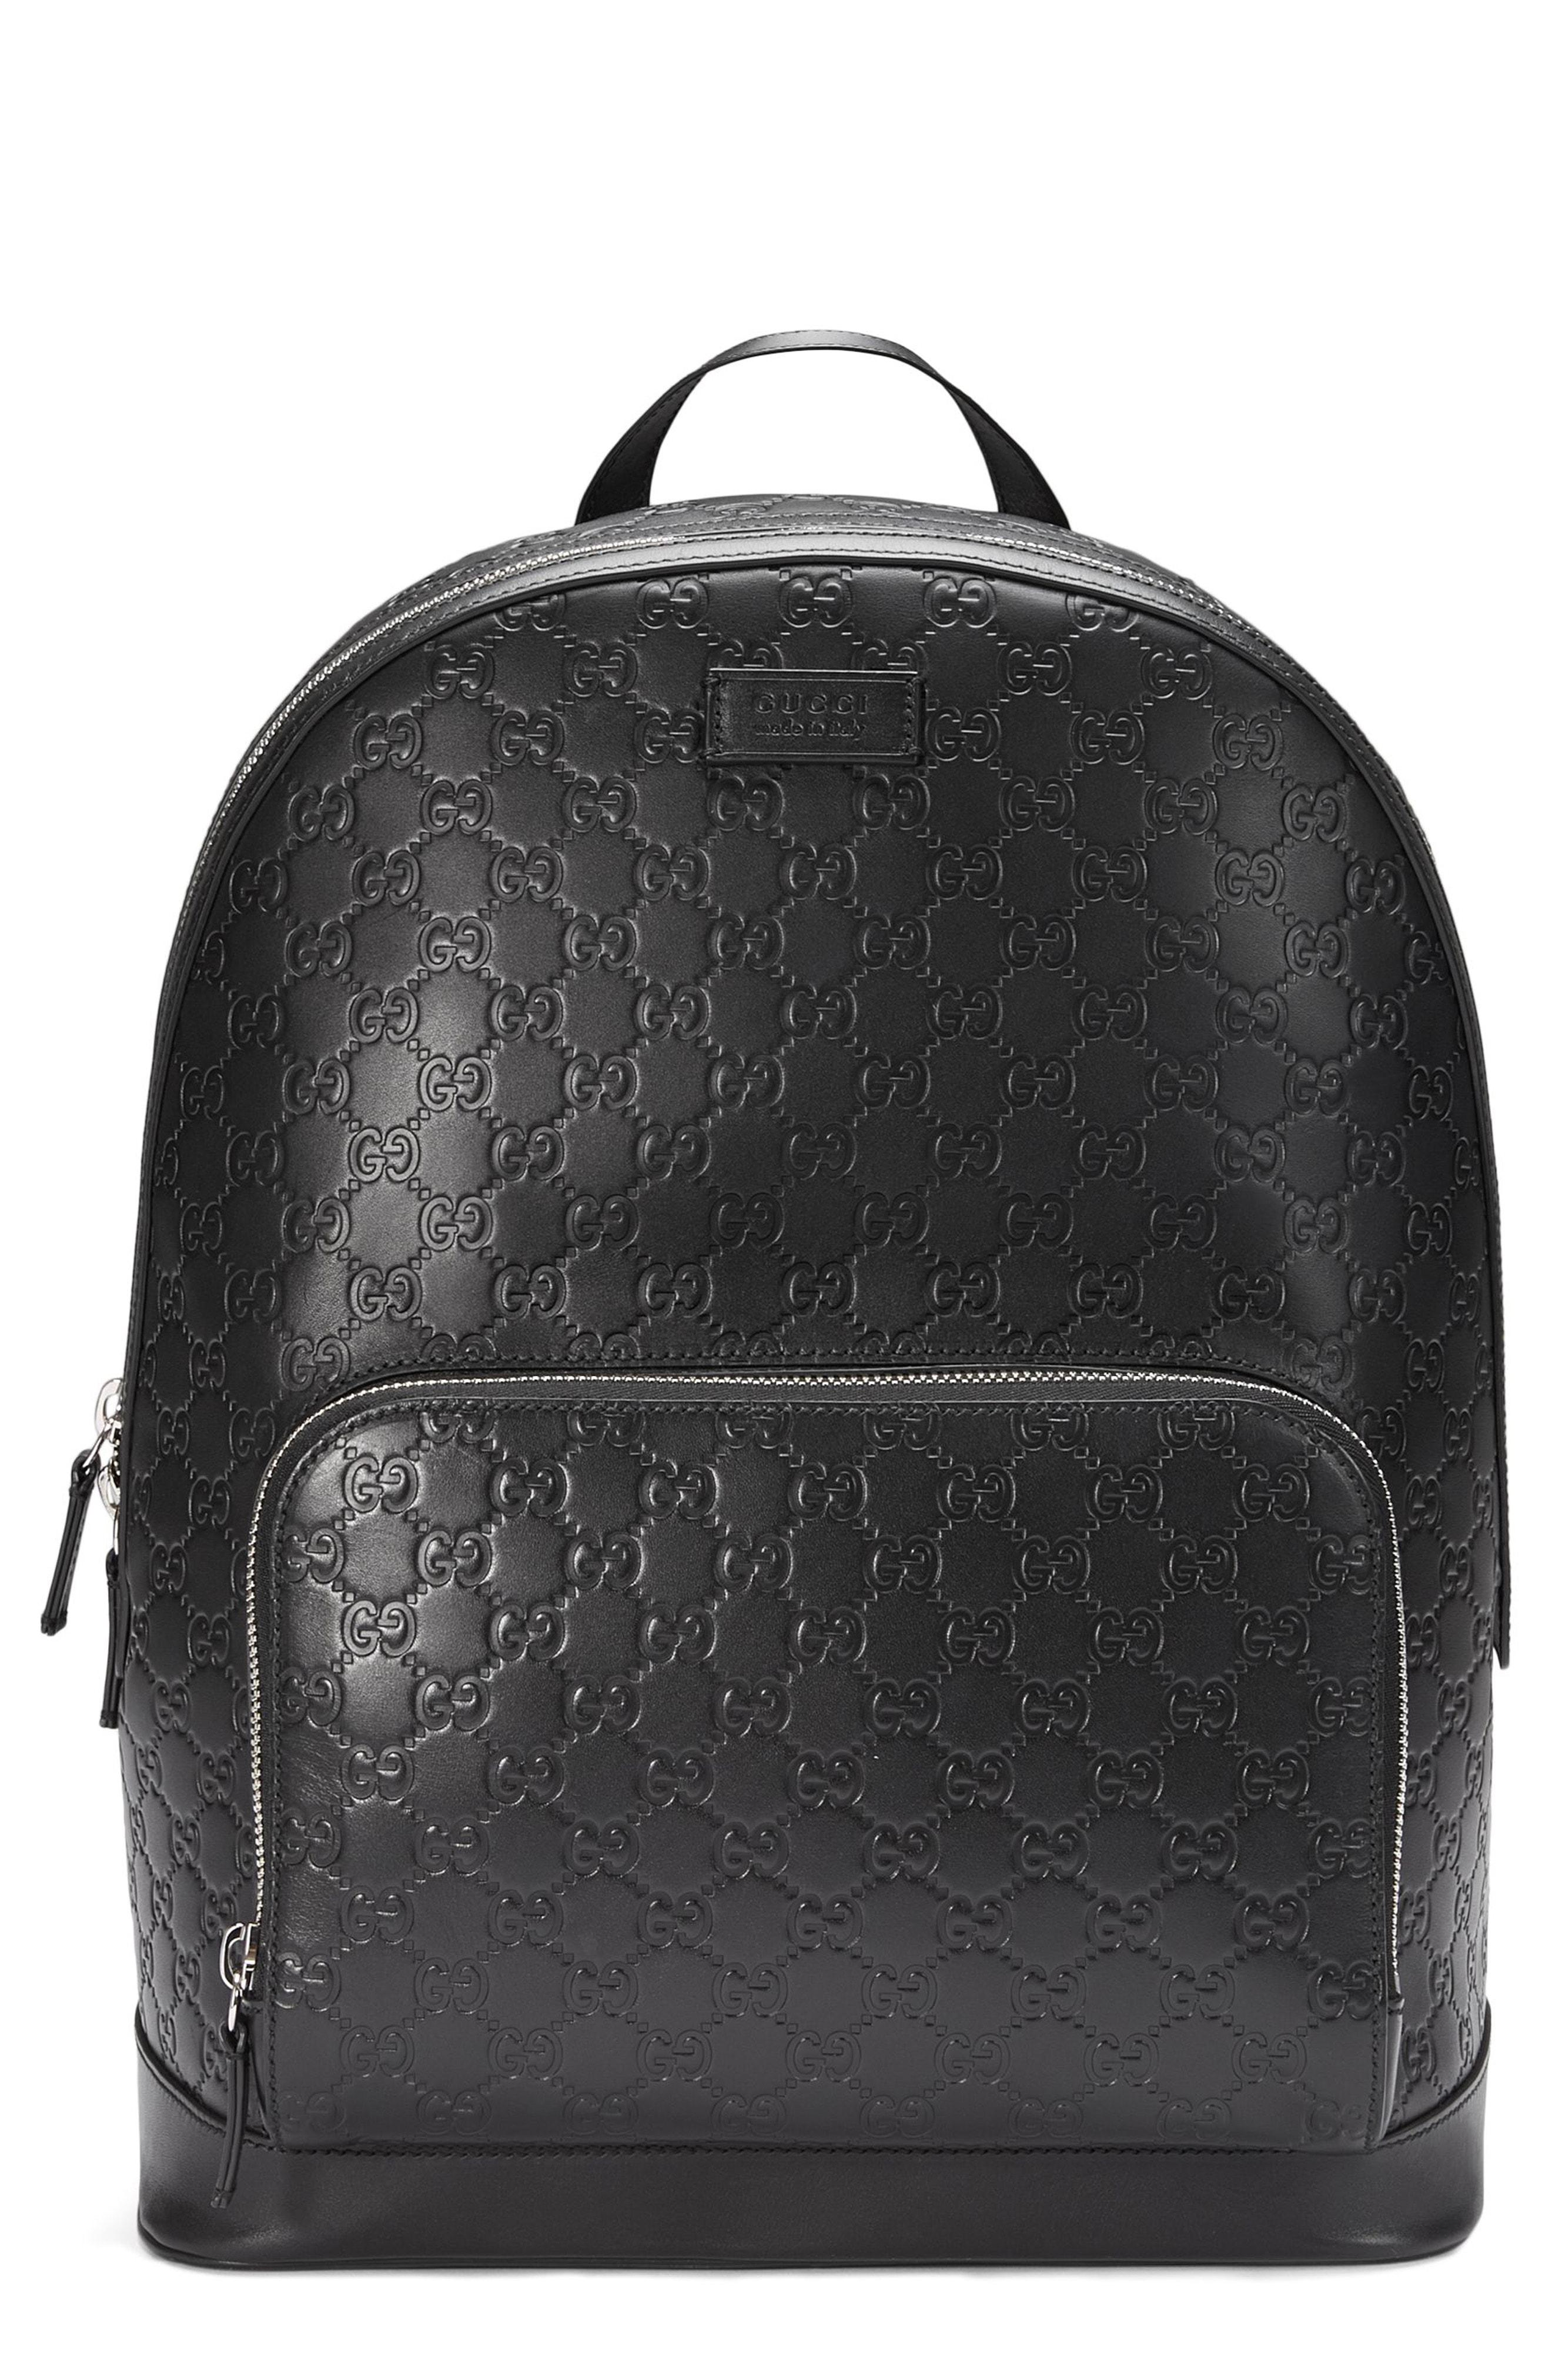 fac9e8f1e095 Gucci Embossed Leather Backpack in Black for Men - Lyst